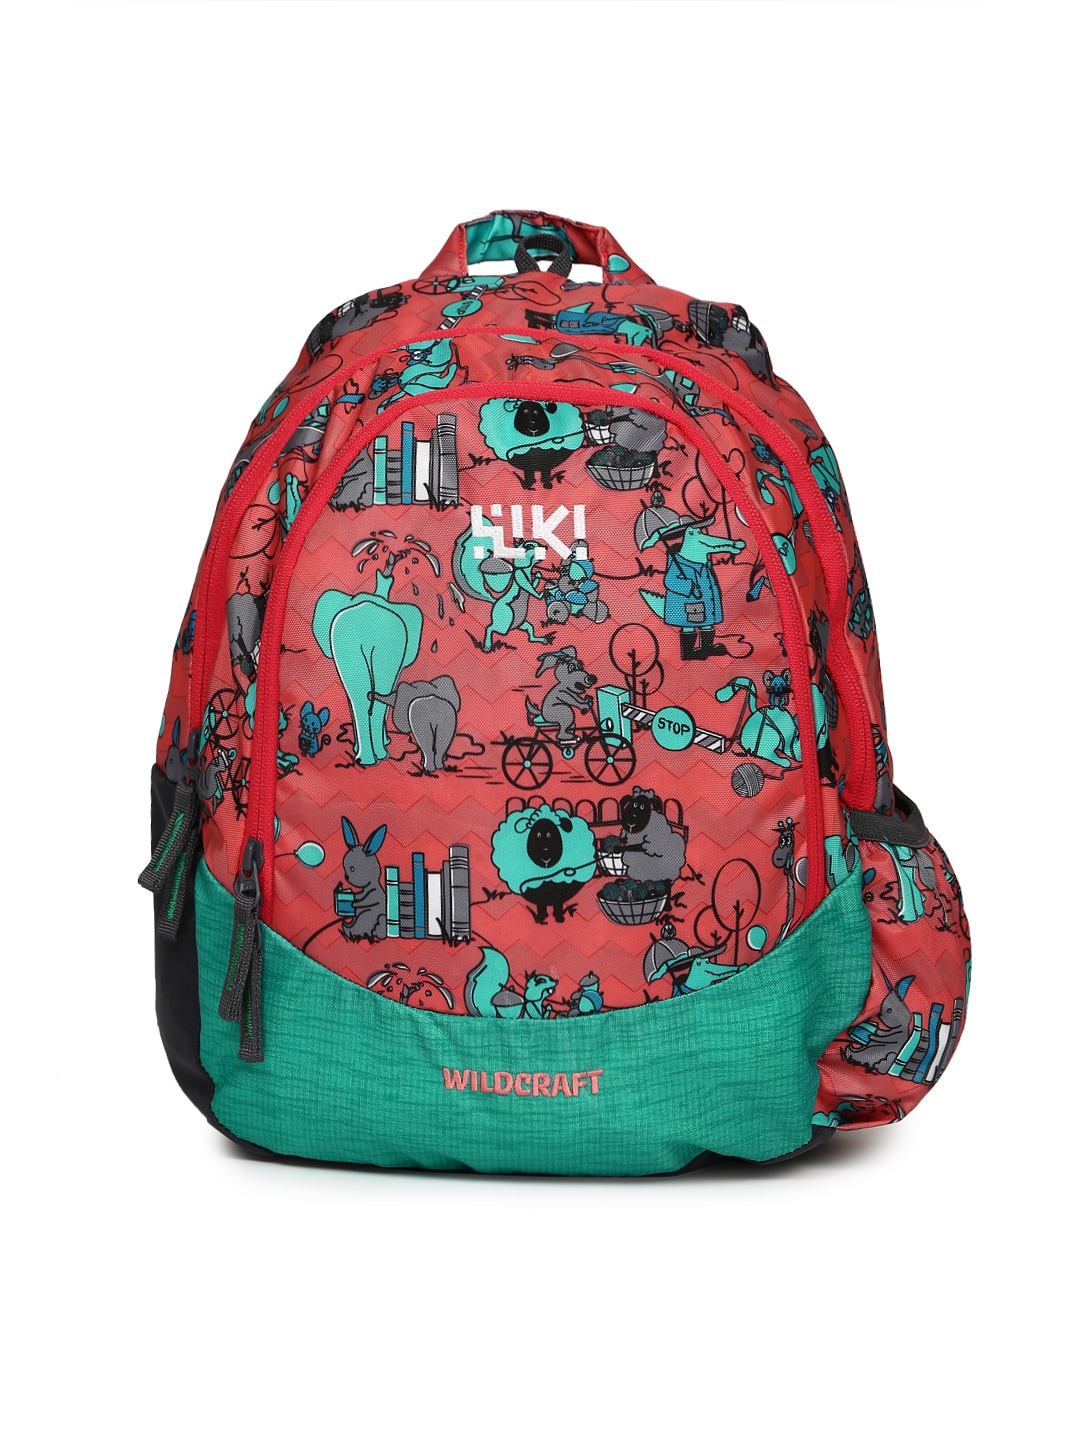 Girls Bags - Buy Bags for Girls Online at Best Price   Myntra 880d3f0ed3